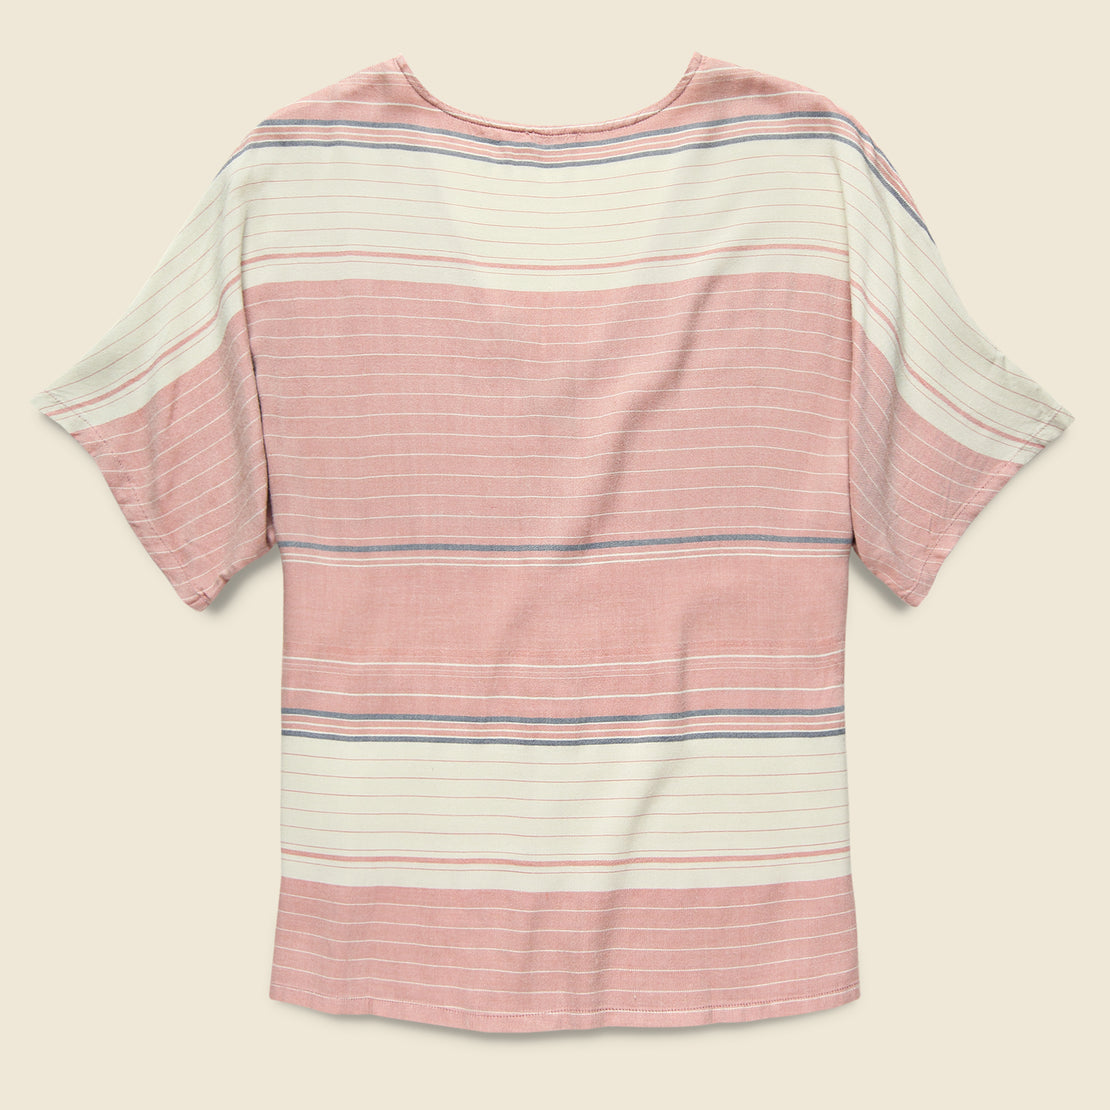 Analeigh Top - Rosewood Stripe